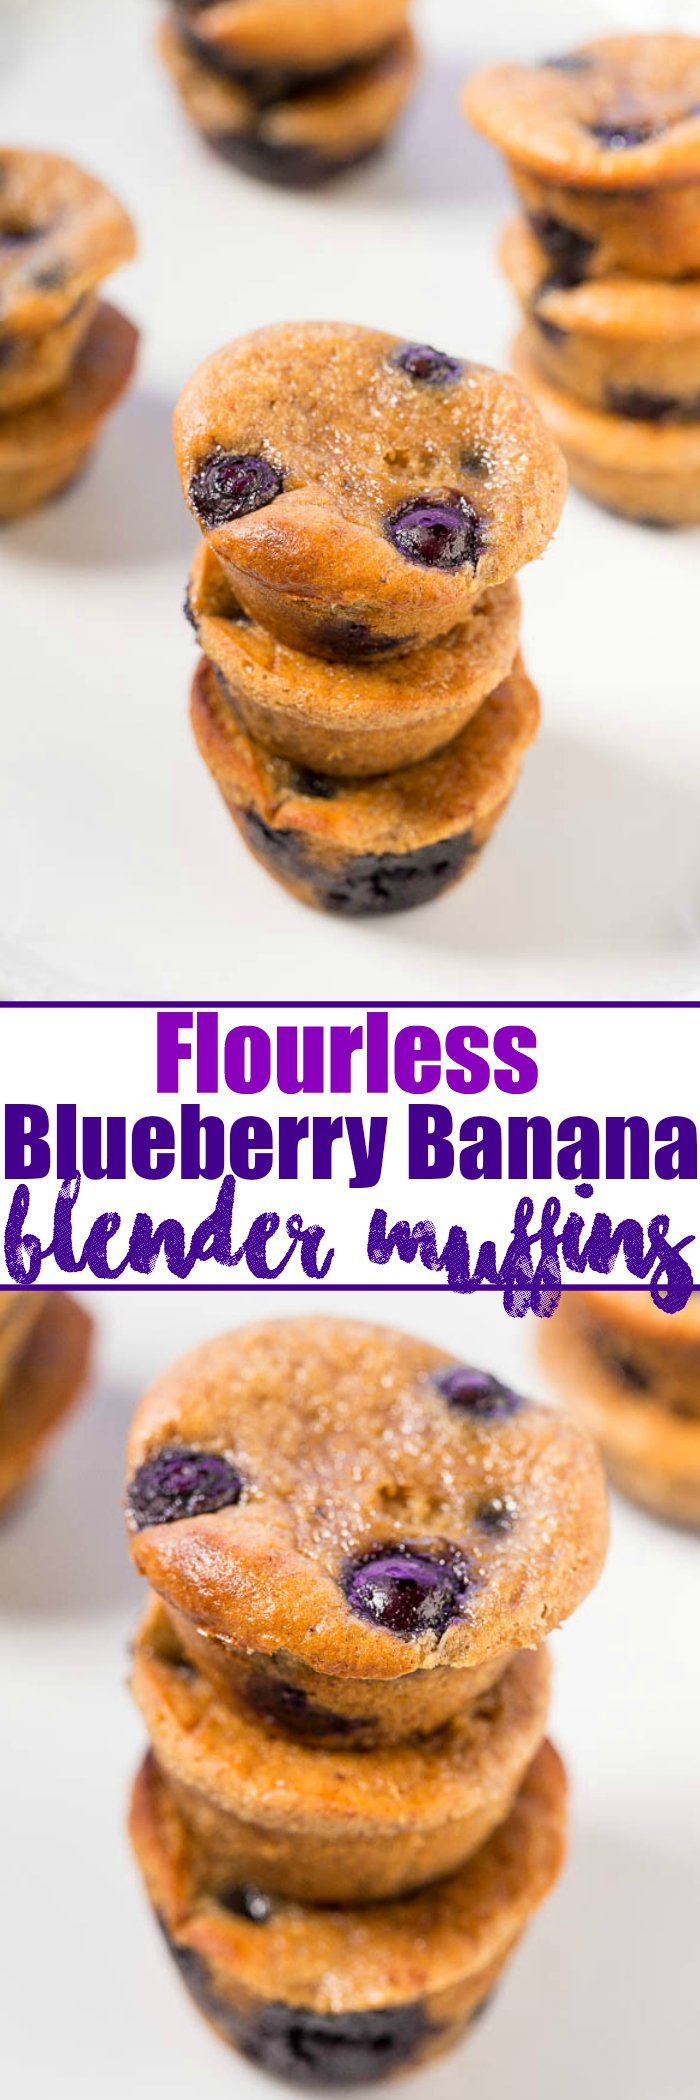 Flourless Blueberry Banana Blender Muffins - NO refined sugar, flour, or oil, and under 100 calories!! Super soft, loaded with blueberries, and taste AMAZING!! As easy as turning on your blender!!